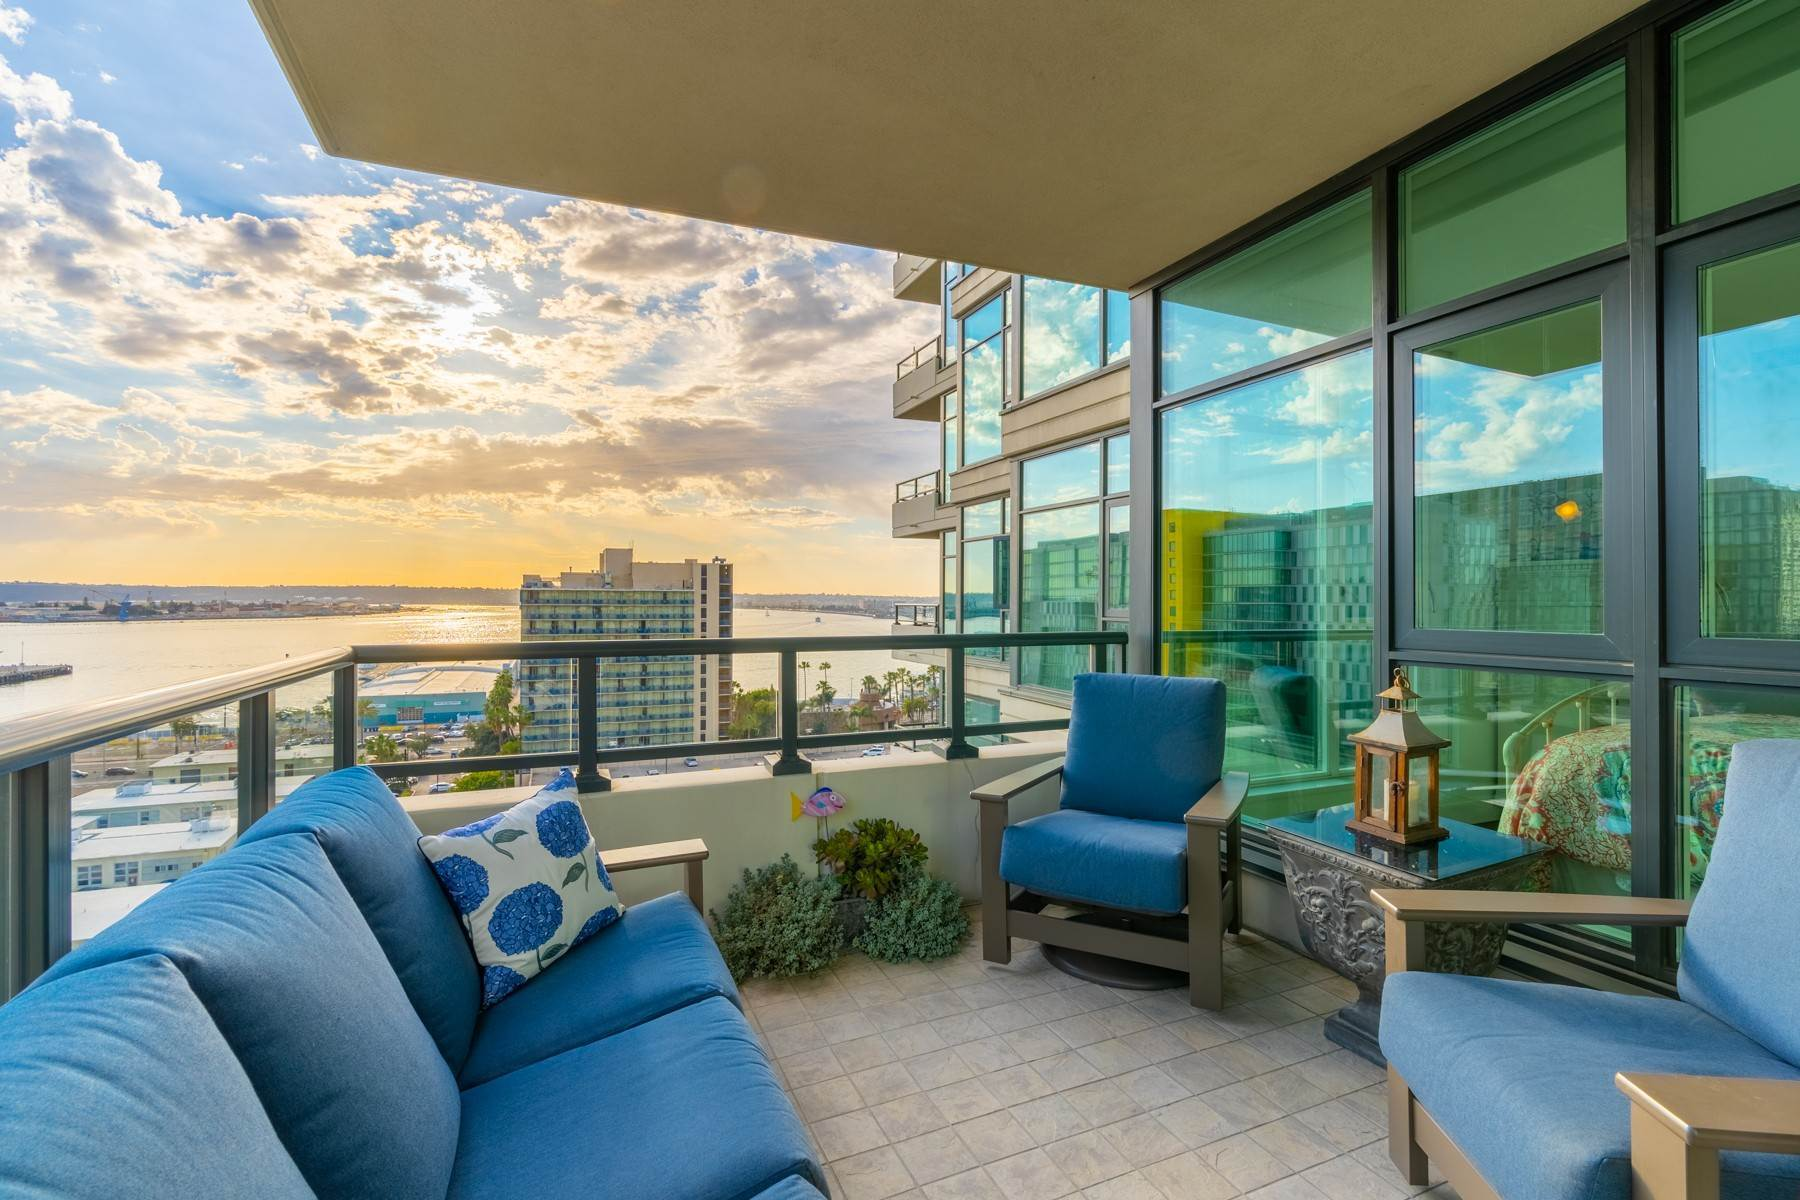 Condominiums for Sale at 1205 Pacific Highway 1306, San Diego, CA 92101 1205 Pacific Highway 1306 San Diego, California 92101 United States